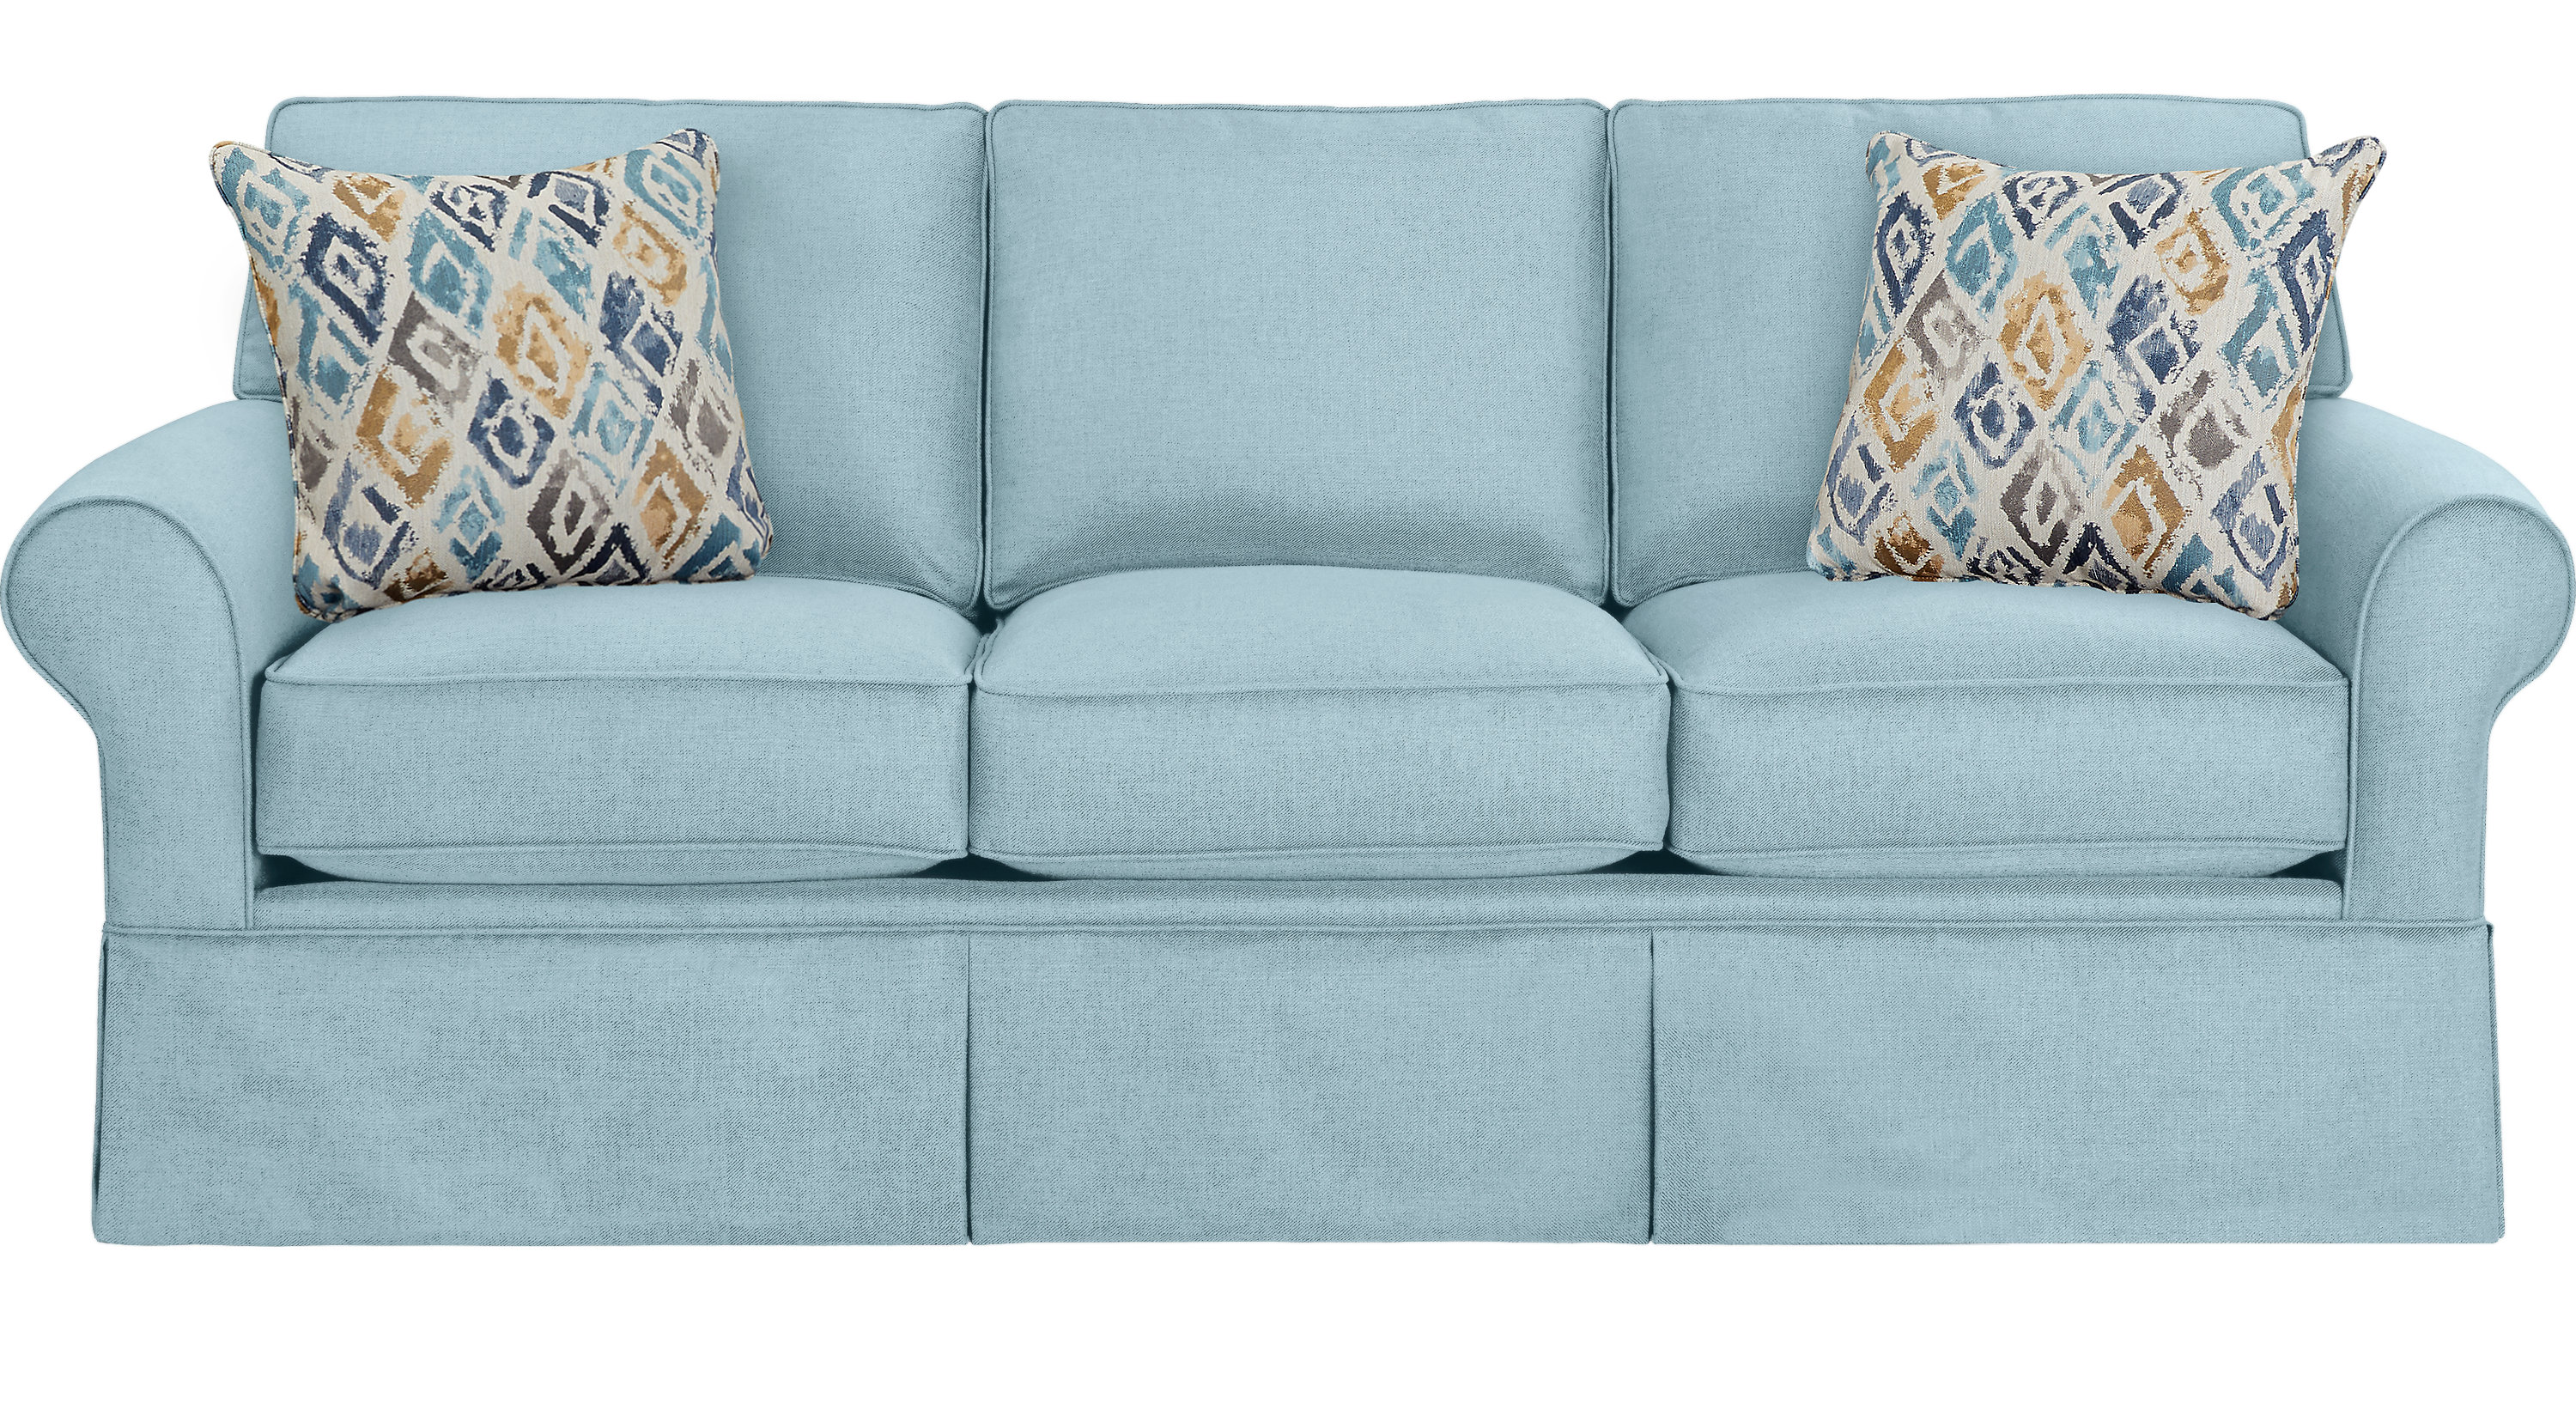 Superior Provincetown Sky (light Blue) Sofa   Classic   Transitional, Polyester